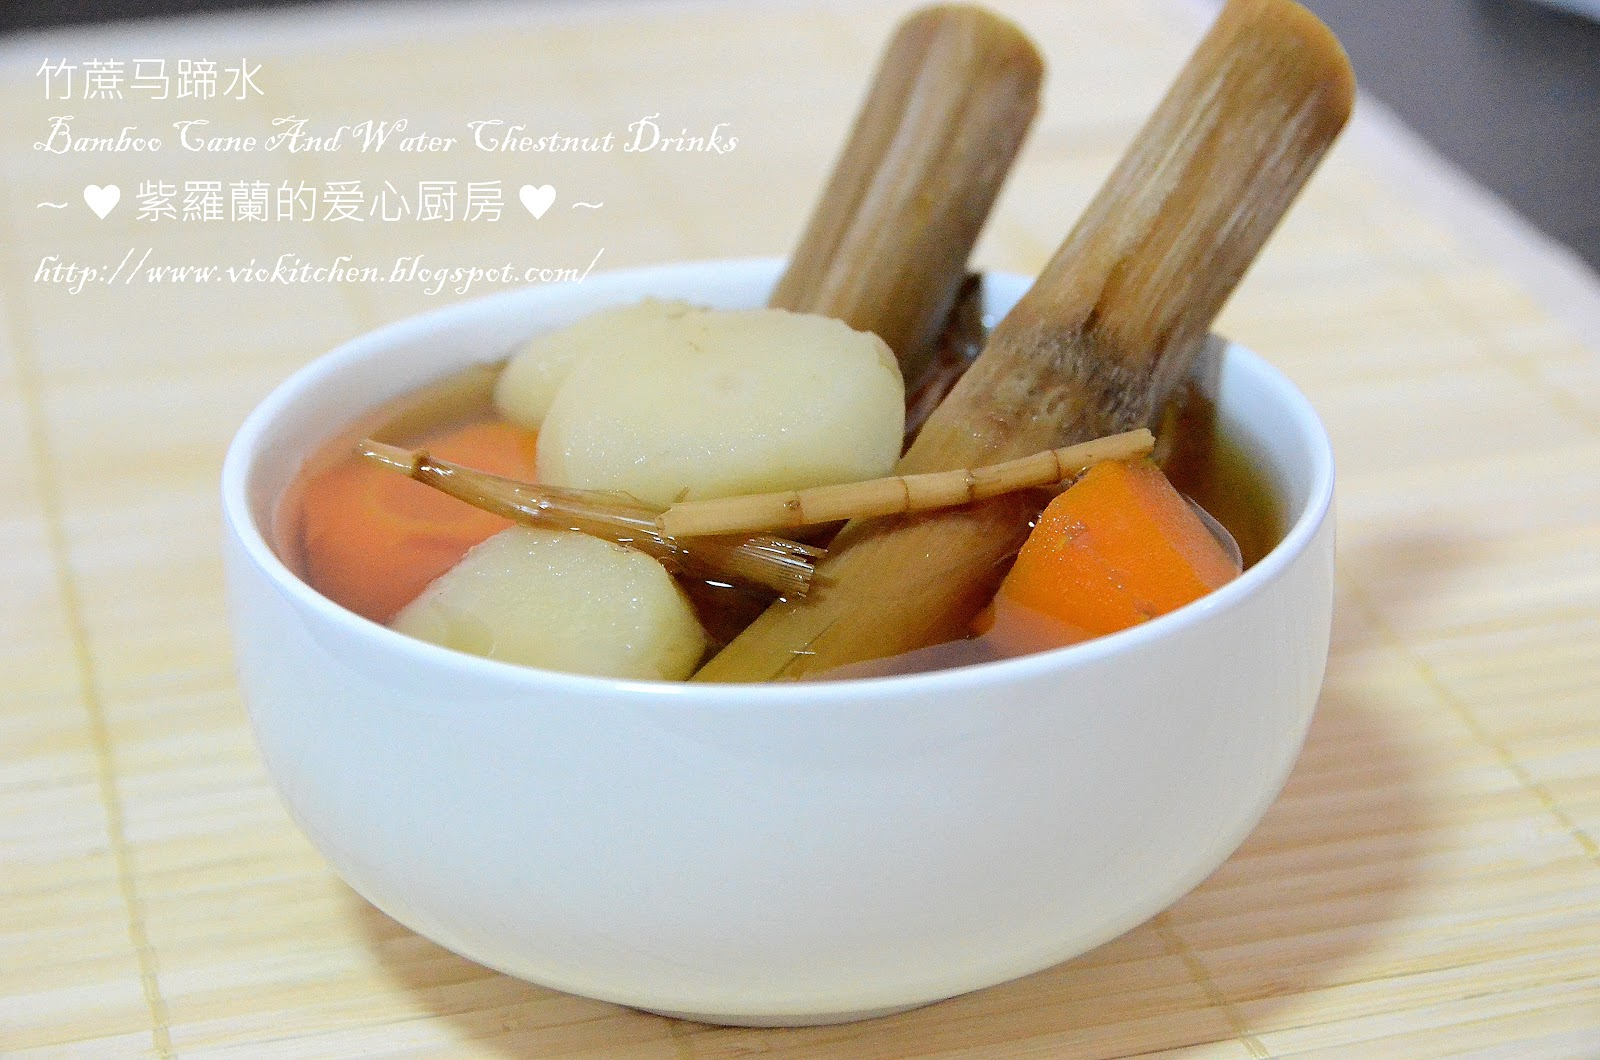 Violet's Kitchen ~♥紫羅蘭的愛心廚房♥~ : 竹蔗馬蹄水 Bamboo Cane And Water Chestnut Drink